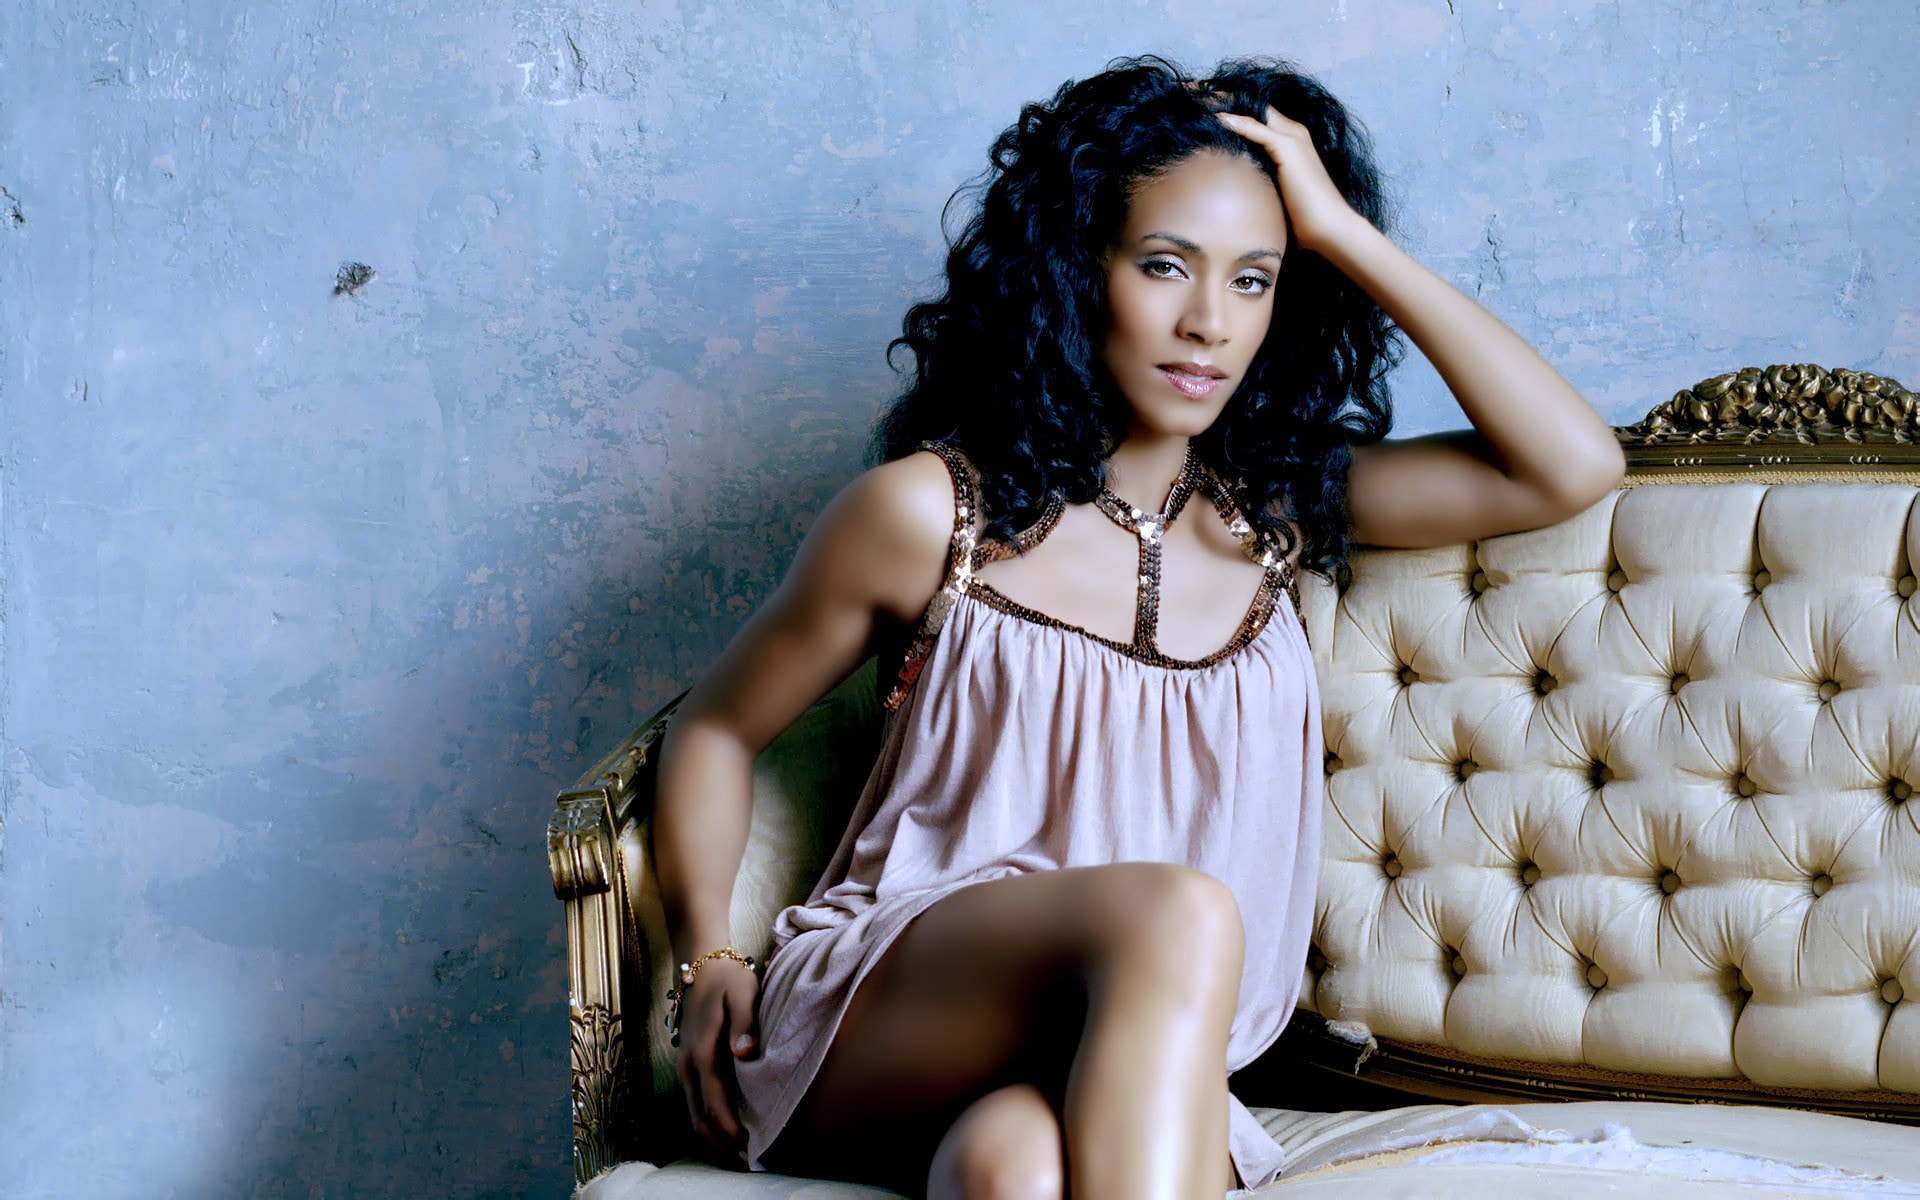 Jada Pinkett Smith Widescreen for desktop